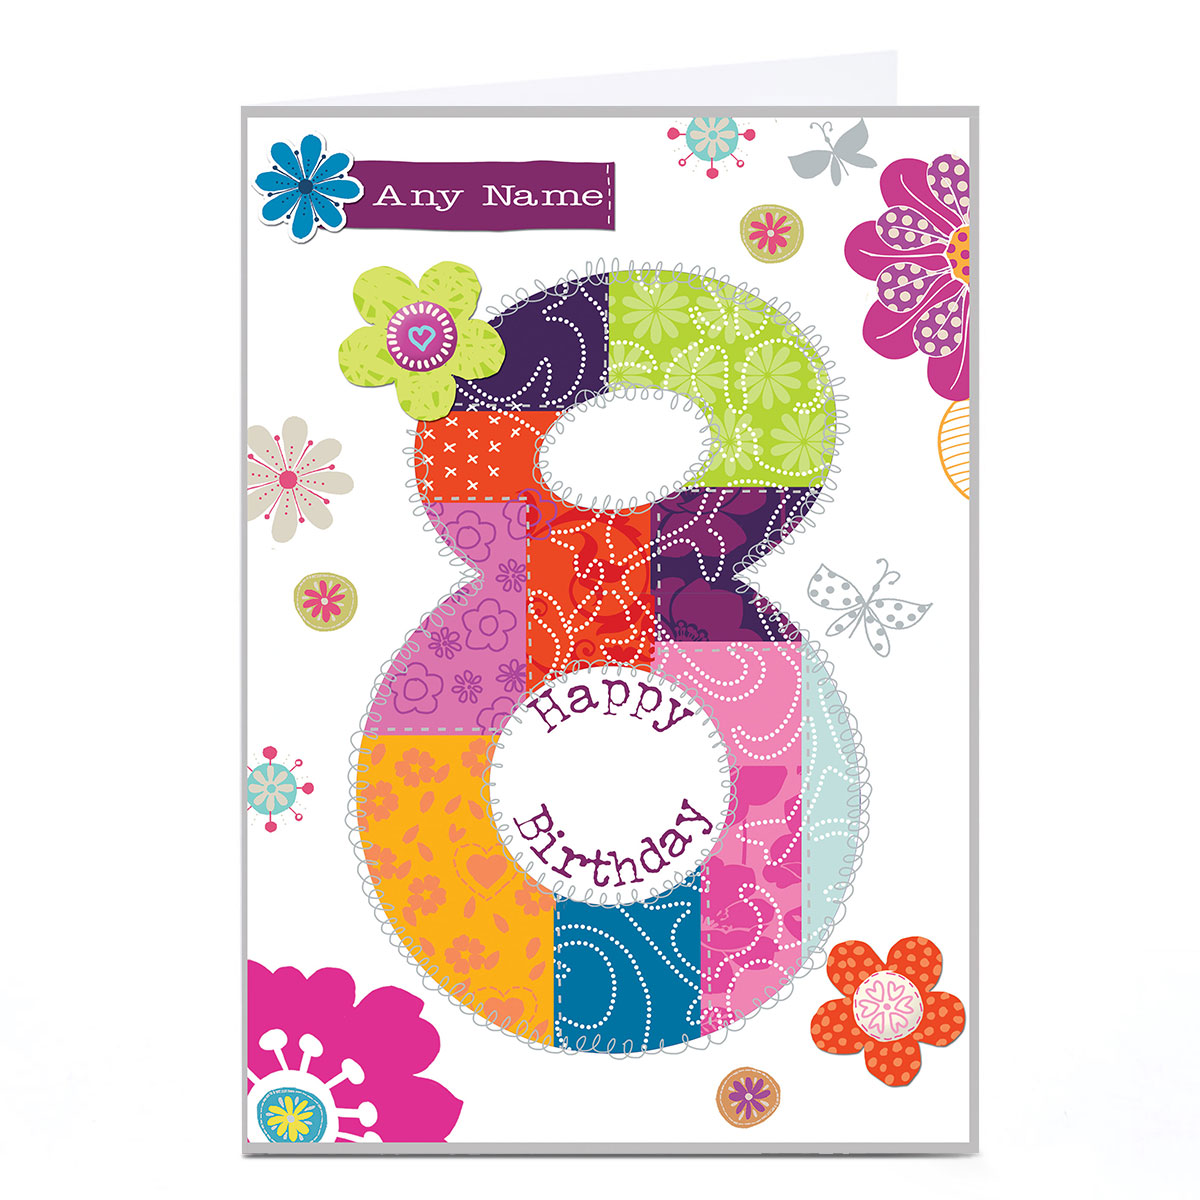 Personalised 8th Birthday Card - Floral Patchwork